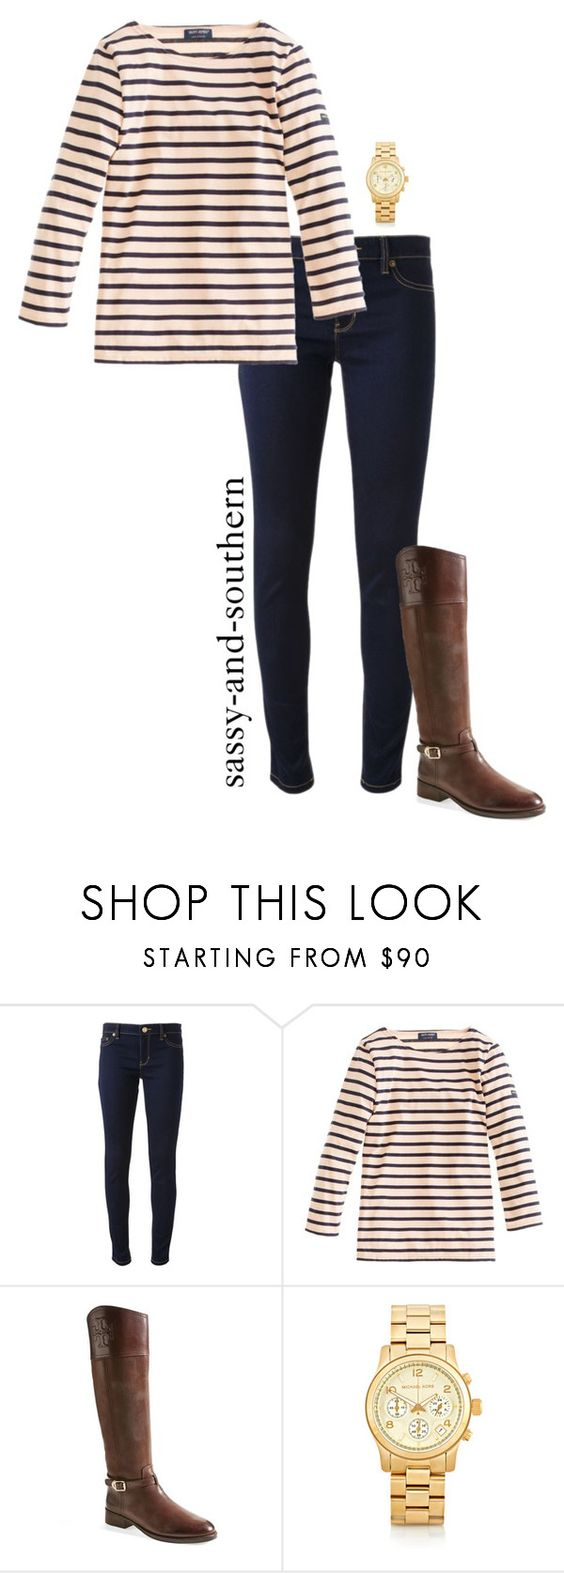 """""""fall outfit"""" by lilypackard ❤ liked on Polyvore featuring Michael Kors, J.Crew, Tory Burch, women's clothing, women, female, woman, misses, juniors and ToryBurch"""